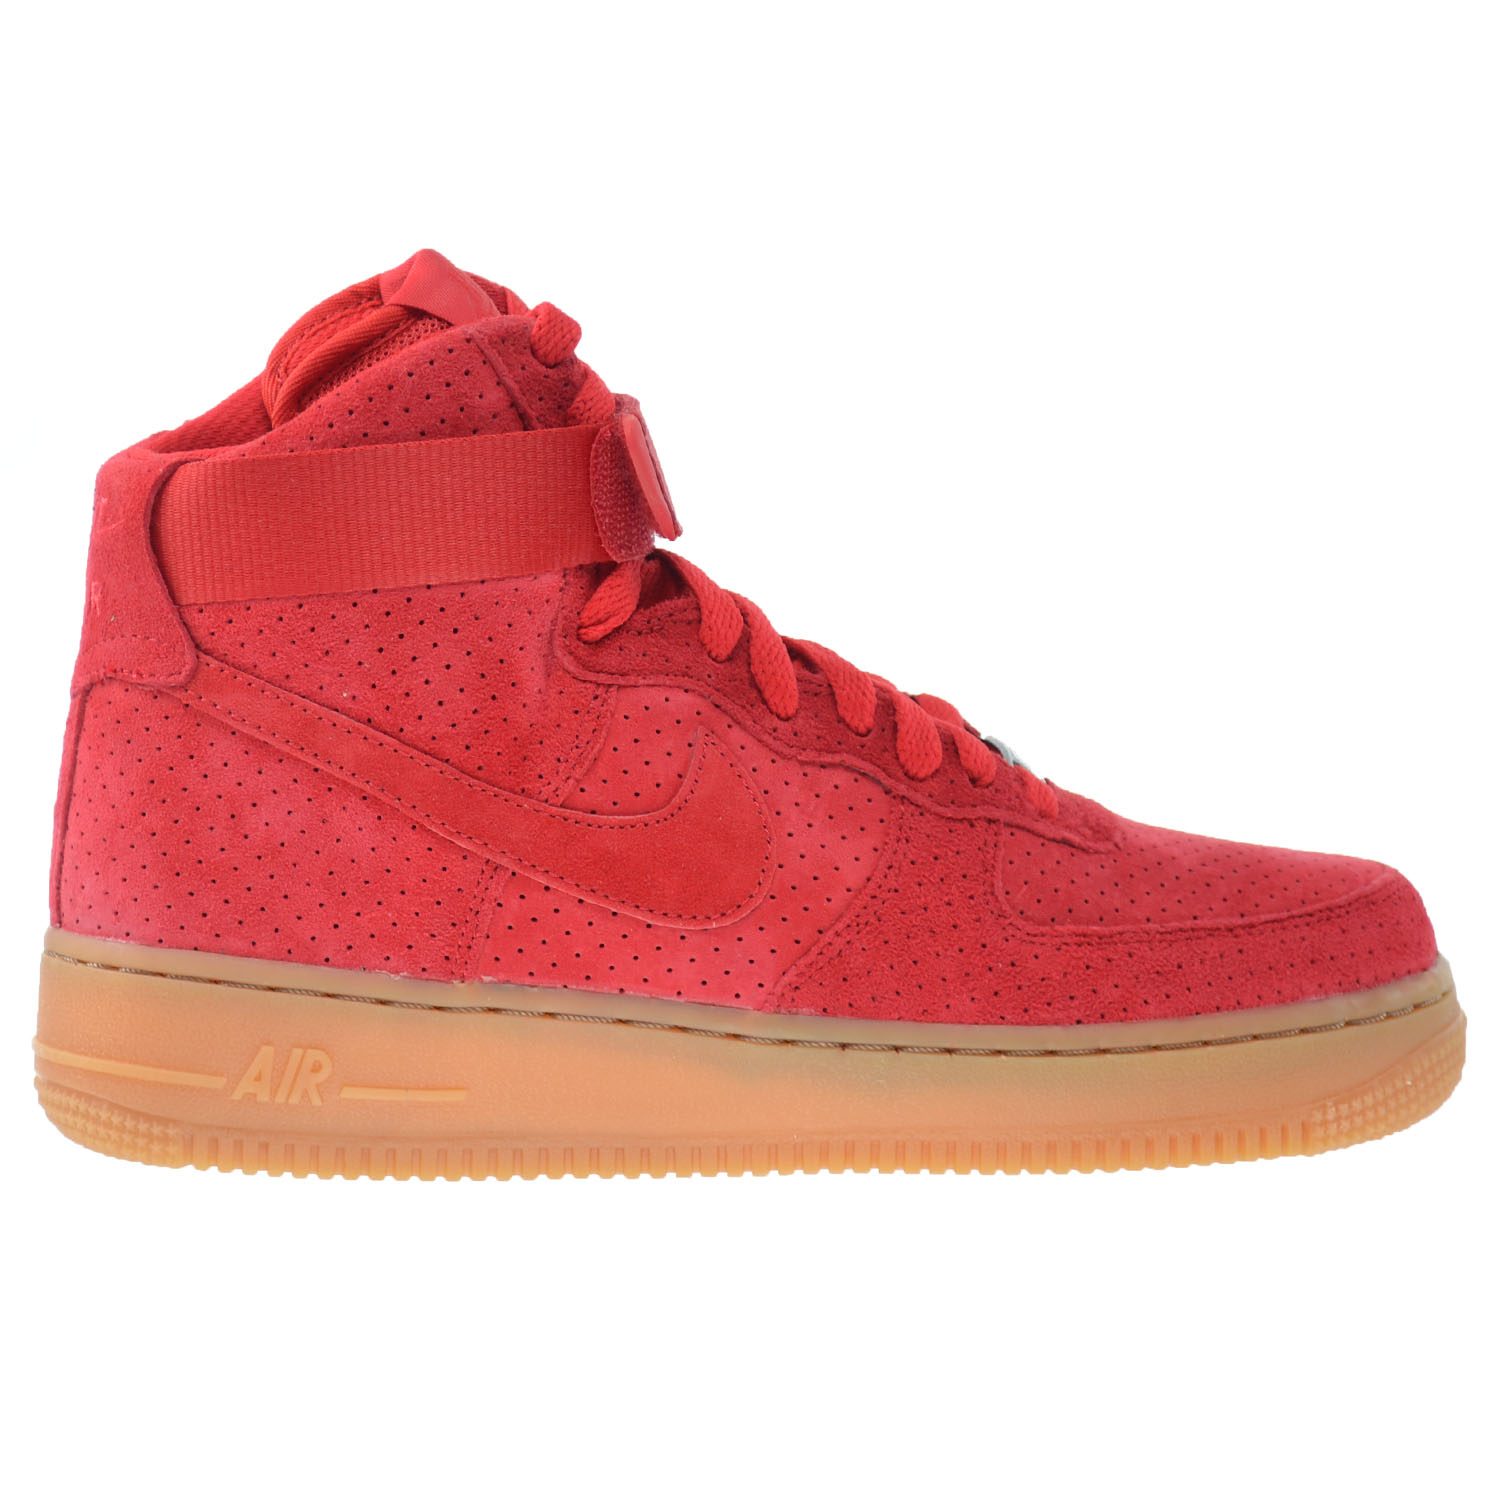 Nike Air Force 1 HI Suede Women's Shoes University Red 74...